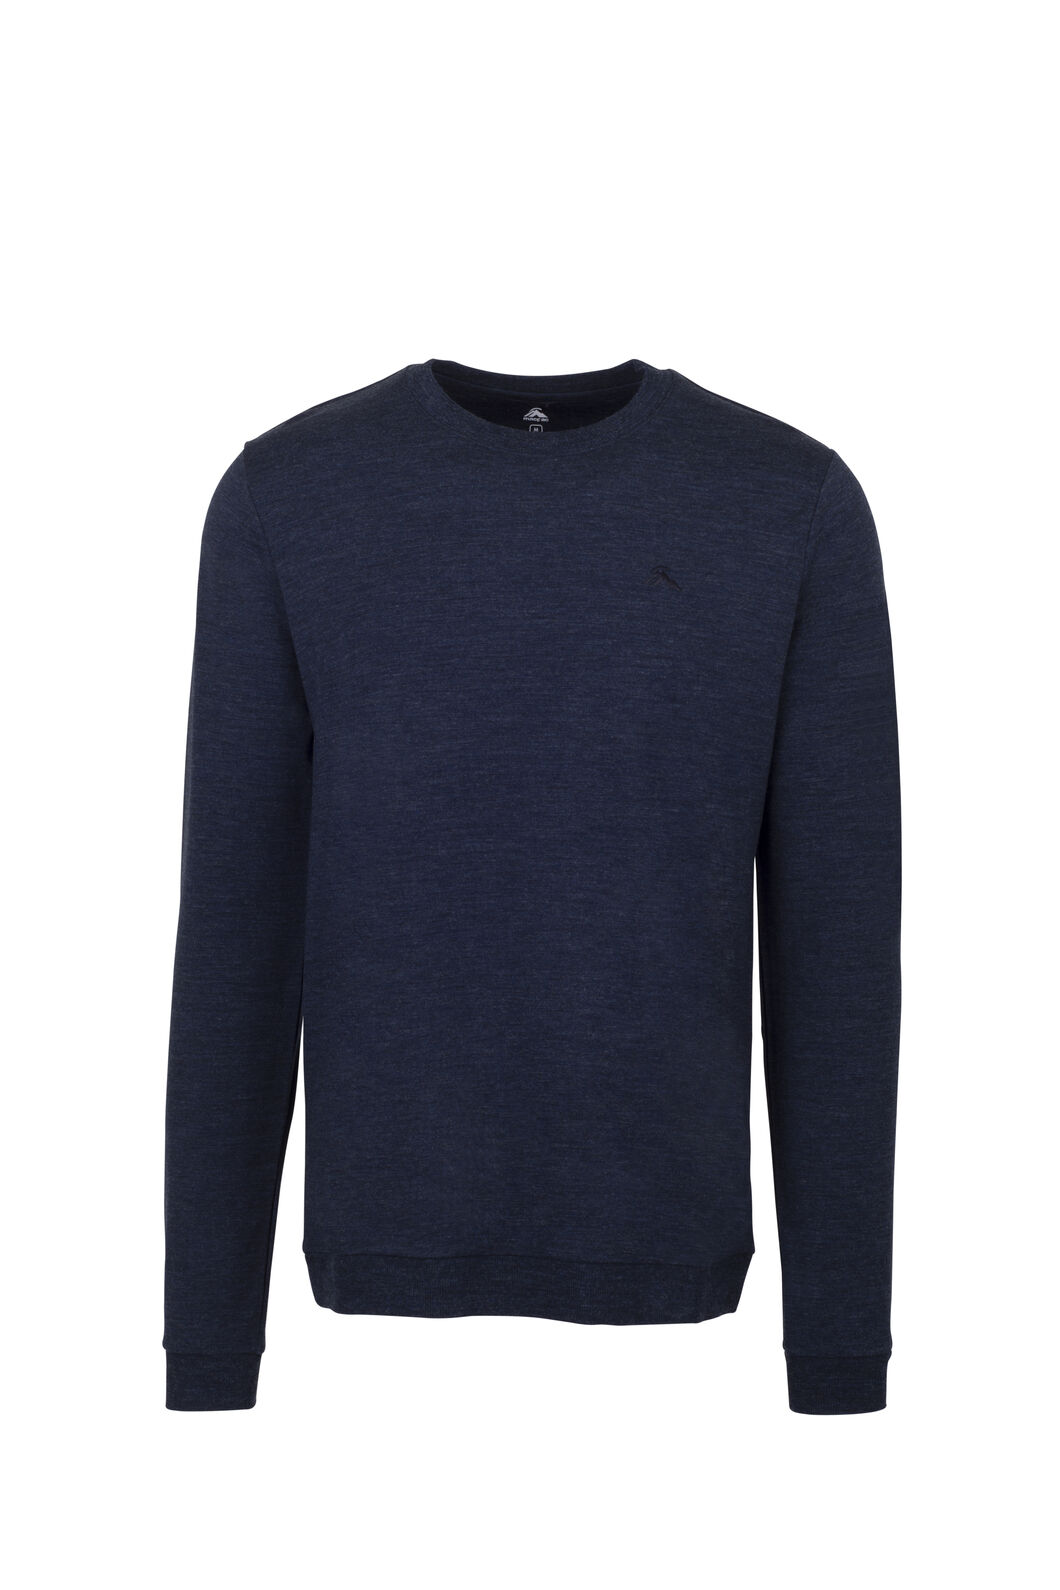 Macpac 280 Merino Long Sleeve Crew - Men's, Carbon Marle, hi-res